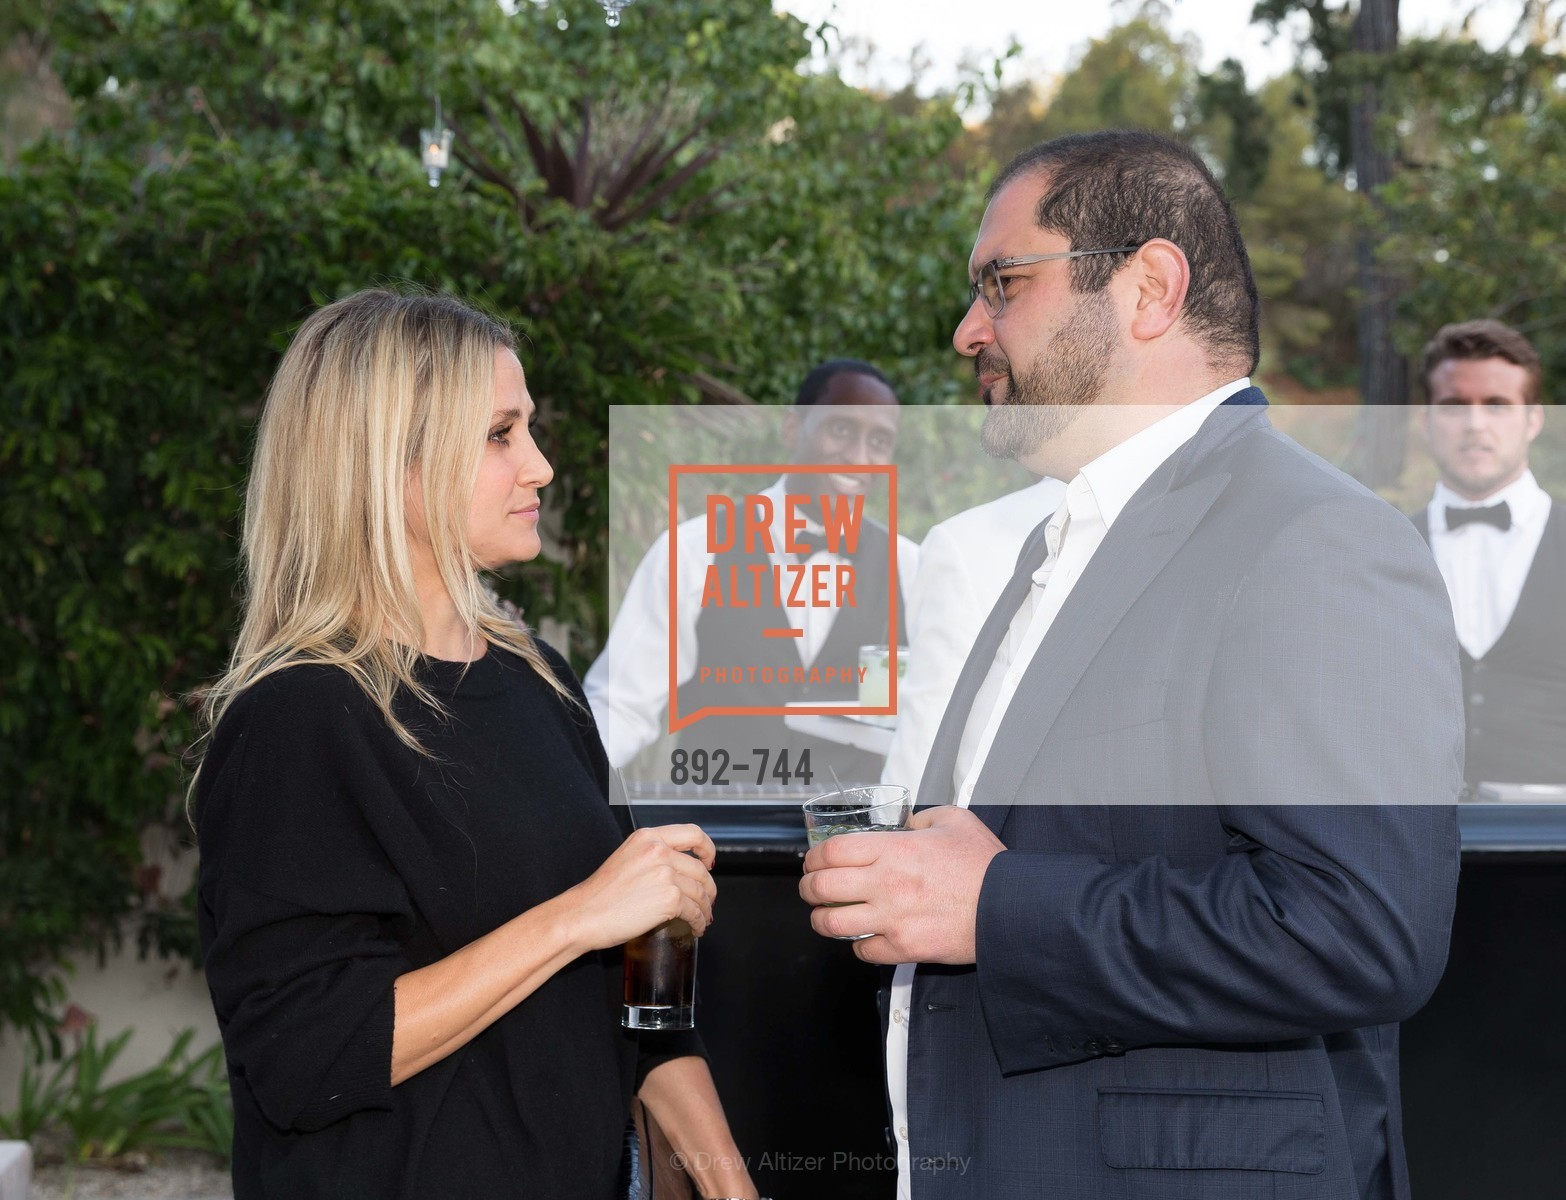 Kimberly Ovitz, Shervin Pishevar, Celebration of Launch of SHYP in Los Angeles, US, May 20th, 2015,Drew Altizer, Drew Altizer Photography, full-service agency, private events, San Francisco photographer, photographer california